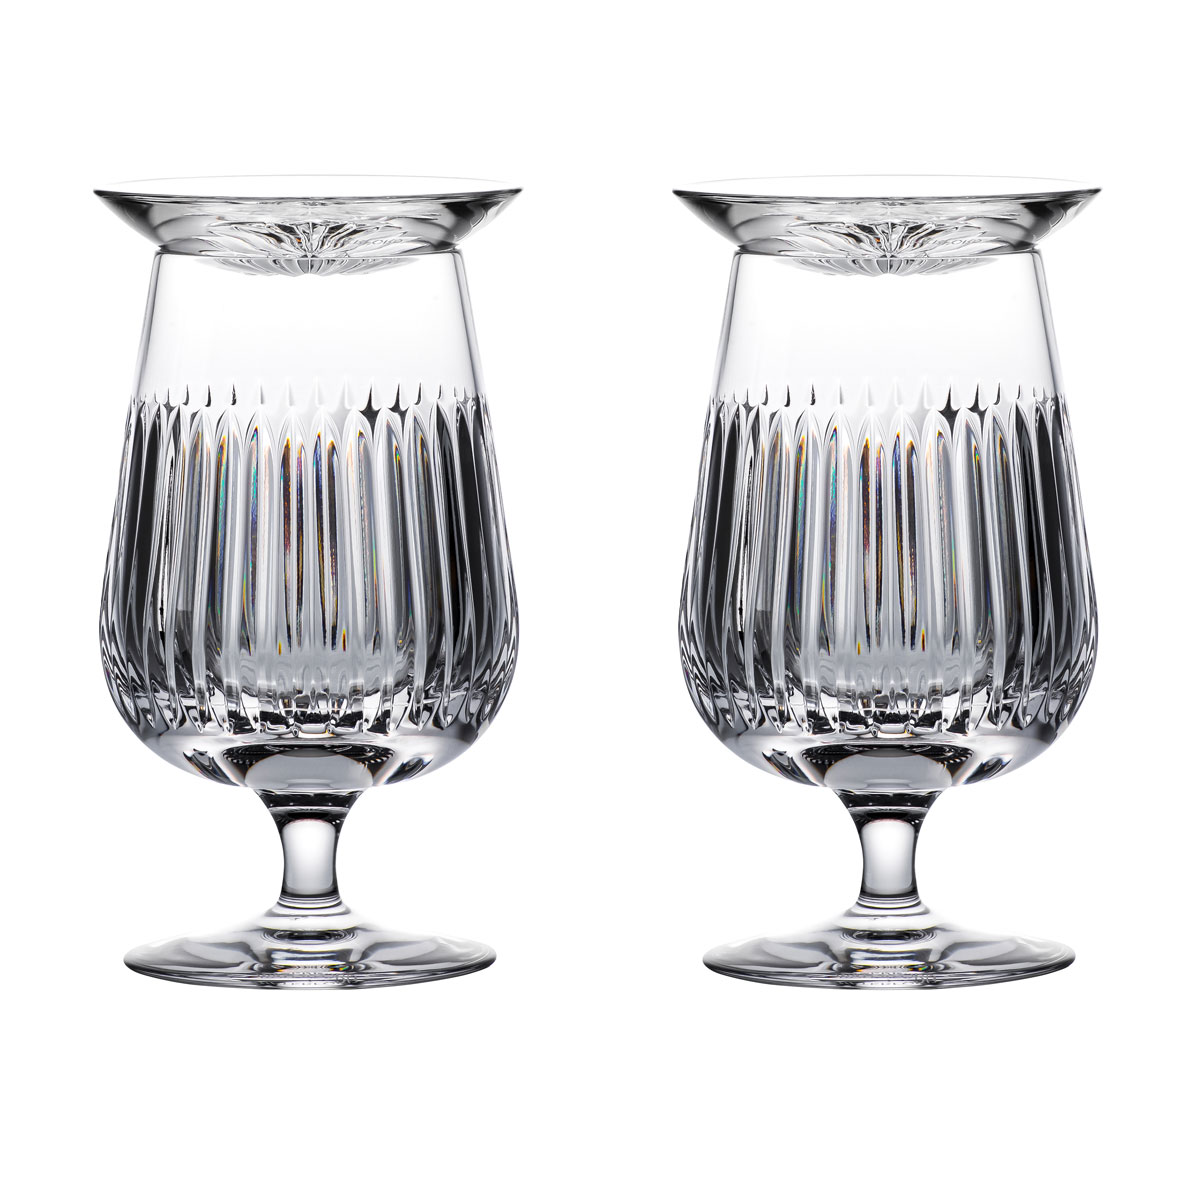 Waterford Crystal Connoisseur Aras Rum Snifters and Tasting Cap, Pair